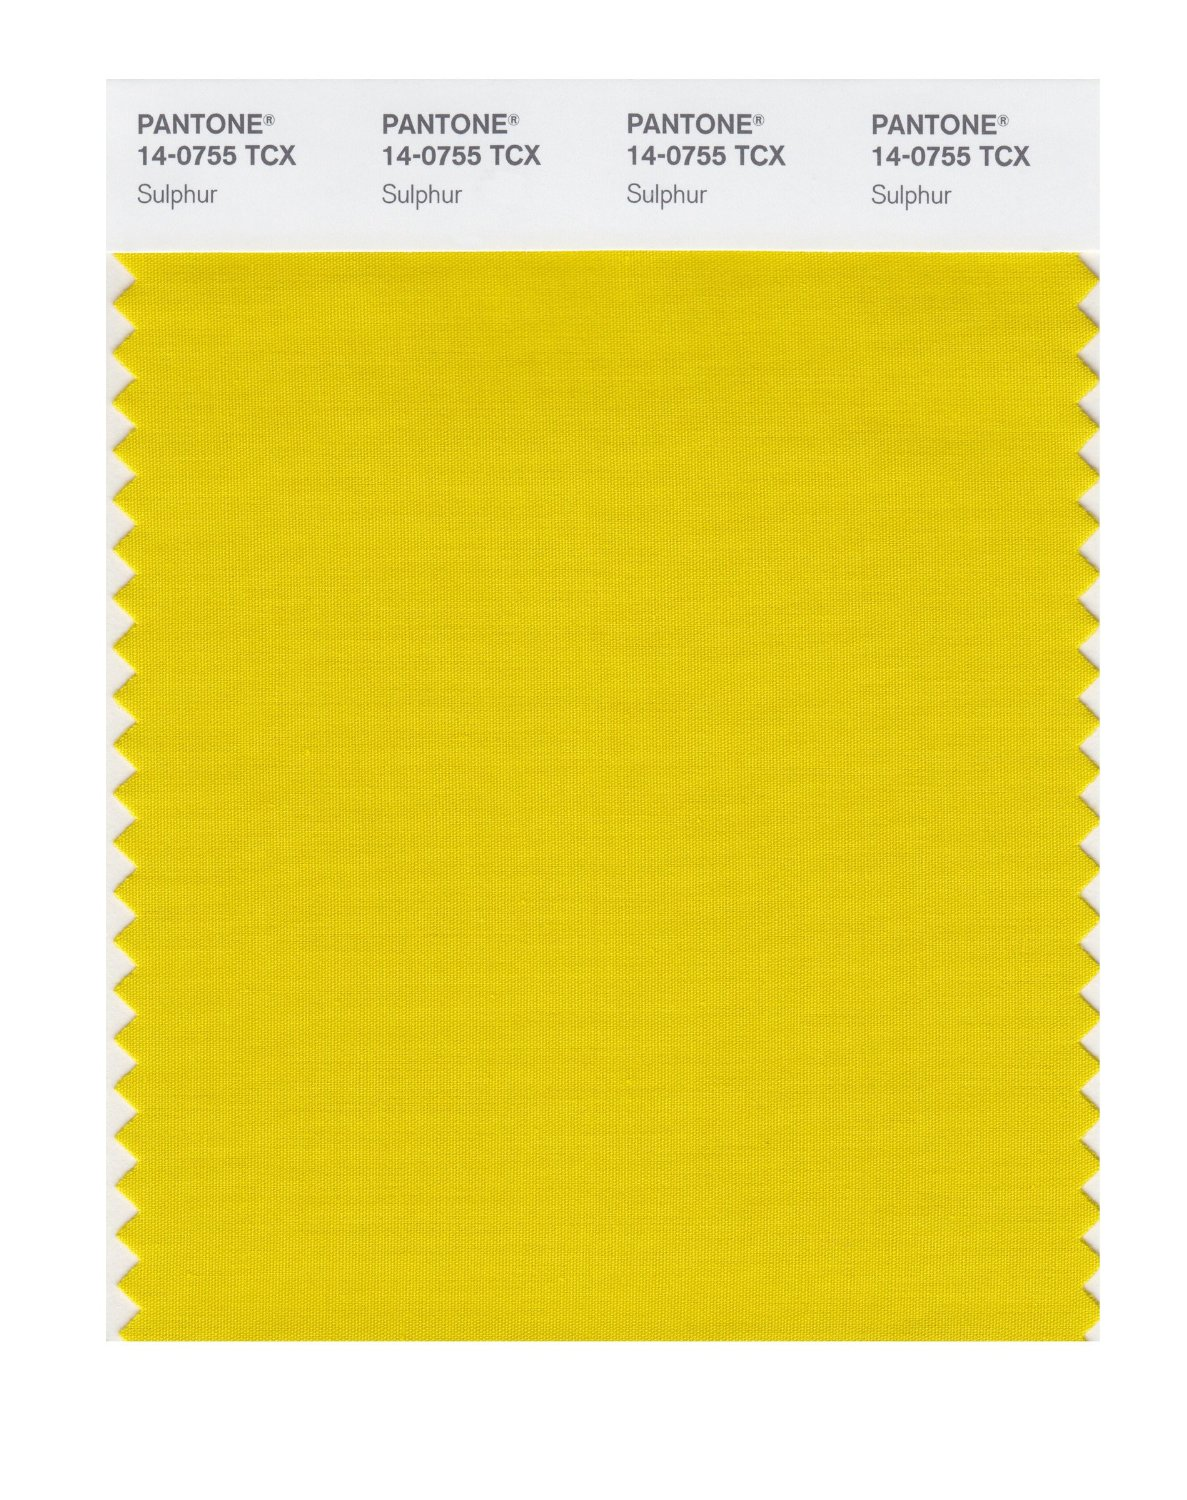 Pantone Smart Swatch 14-0755 Sulphur